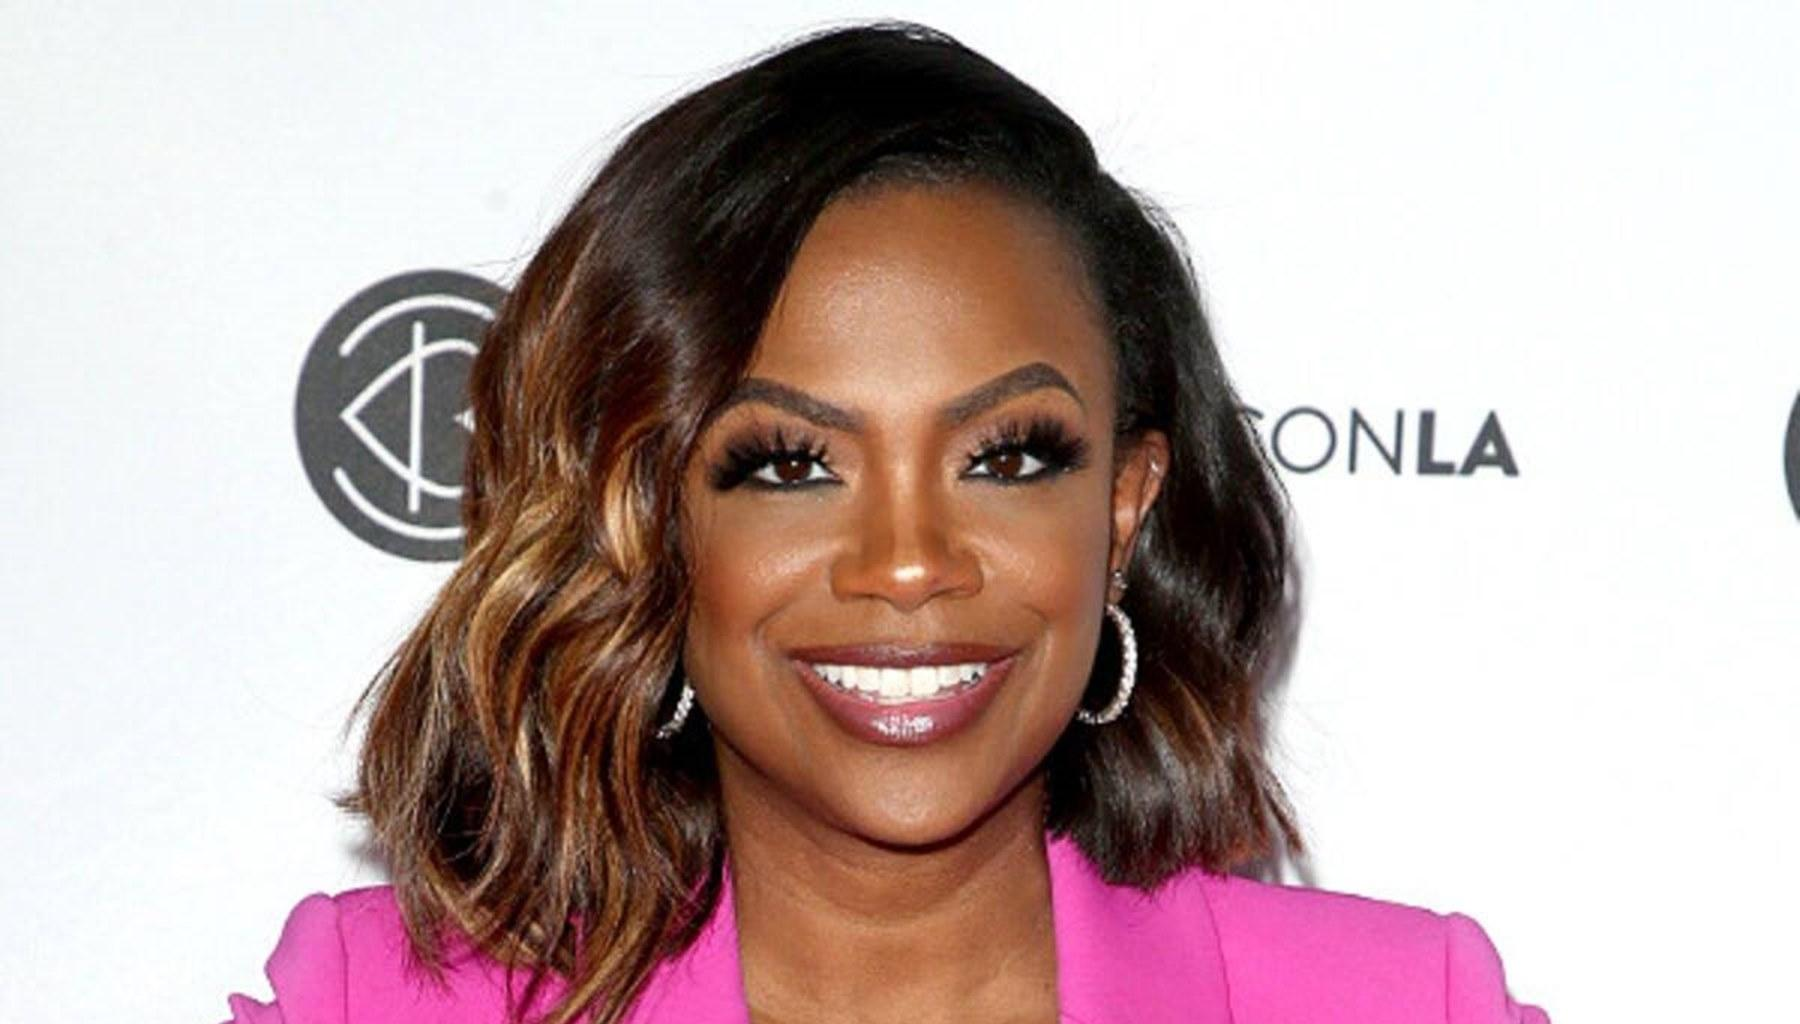 Kandi Burruss Surprises 'Real Housewives Of Atlanta' Fans With A Few Plastic Surgery Confessions In New Video With Todd Tucker